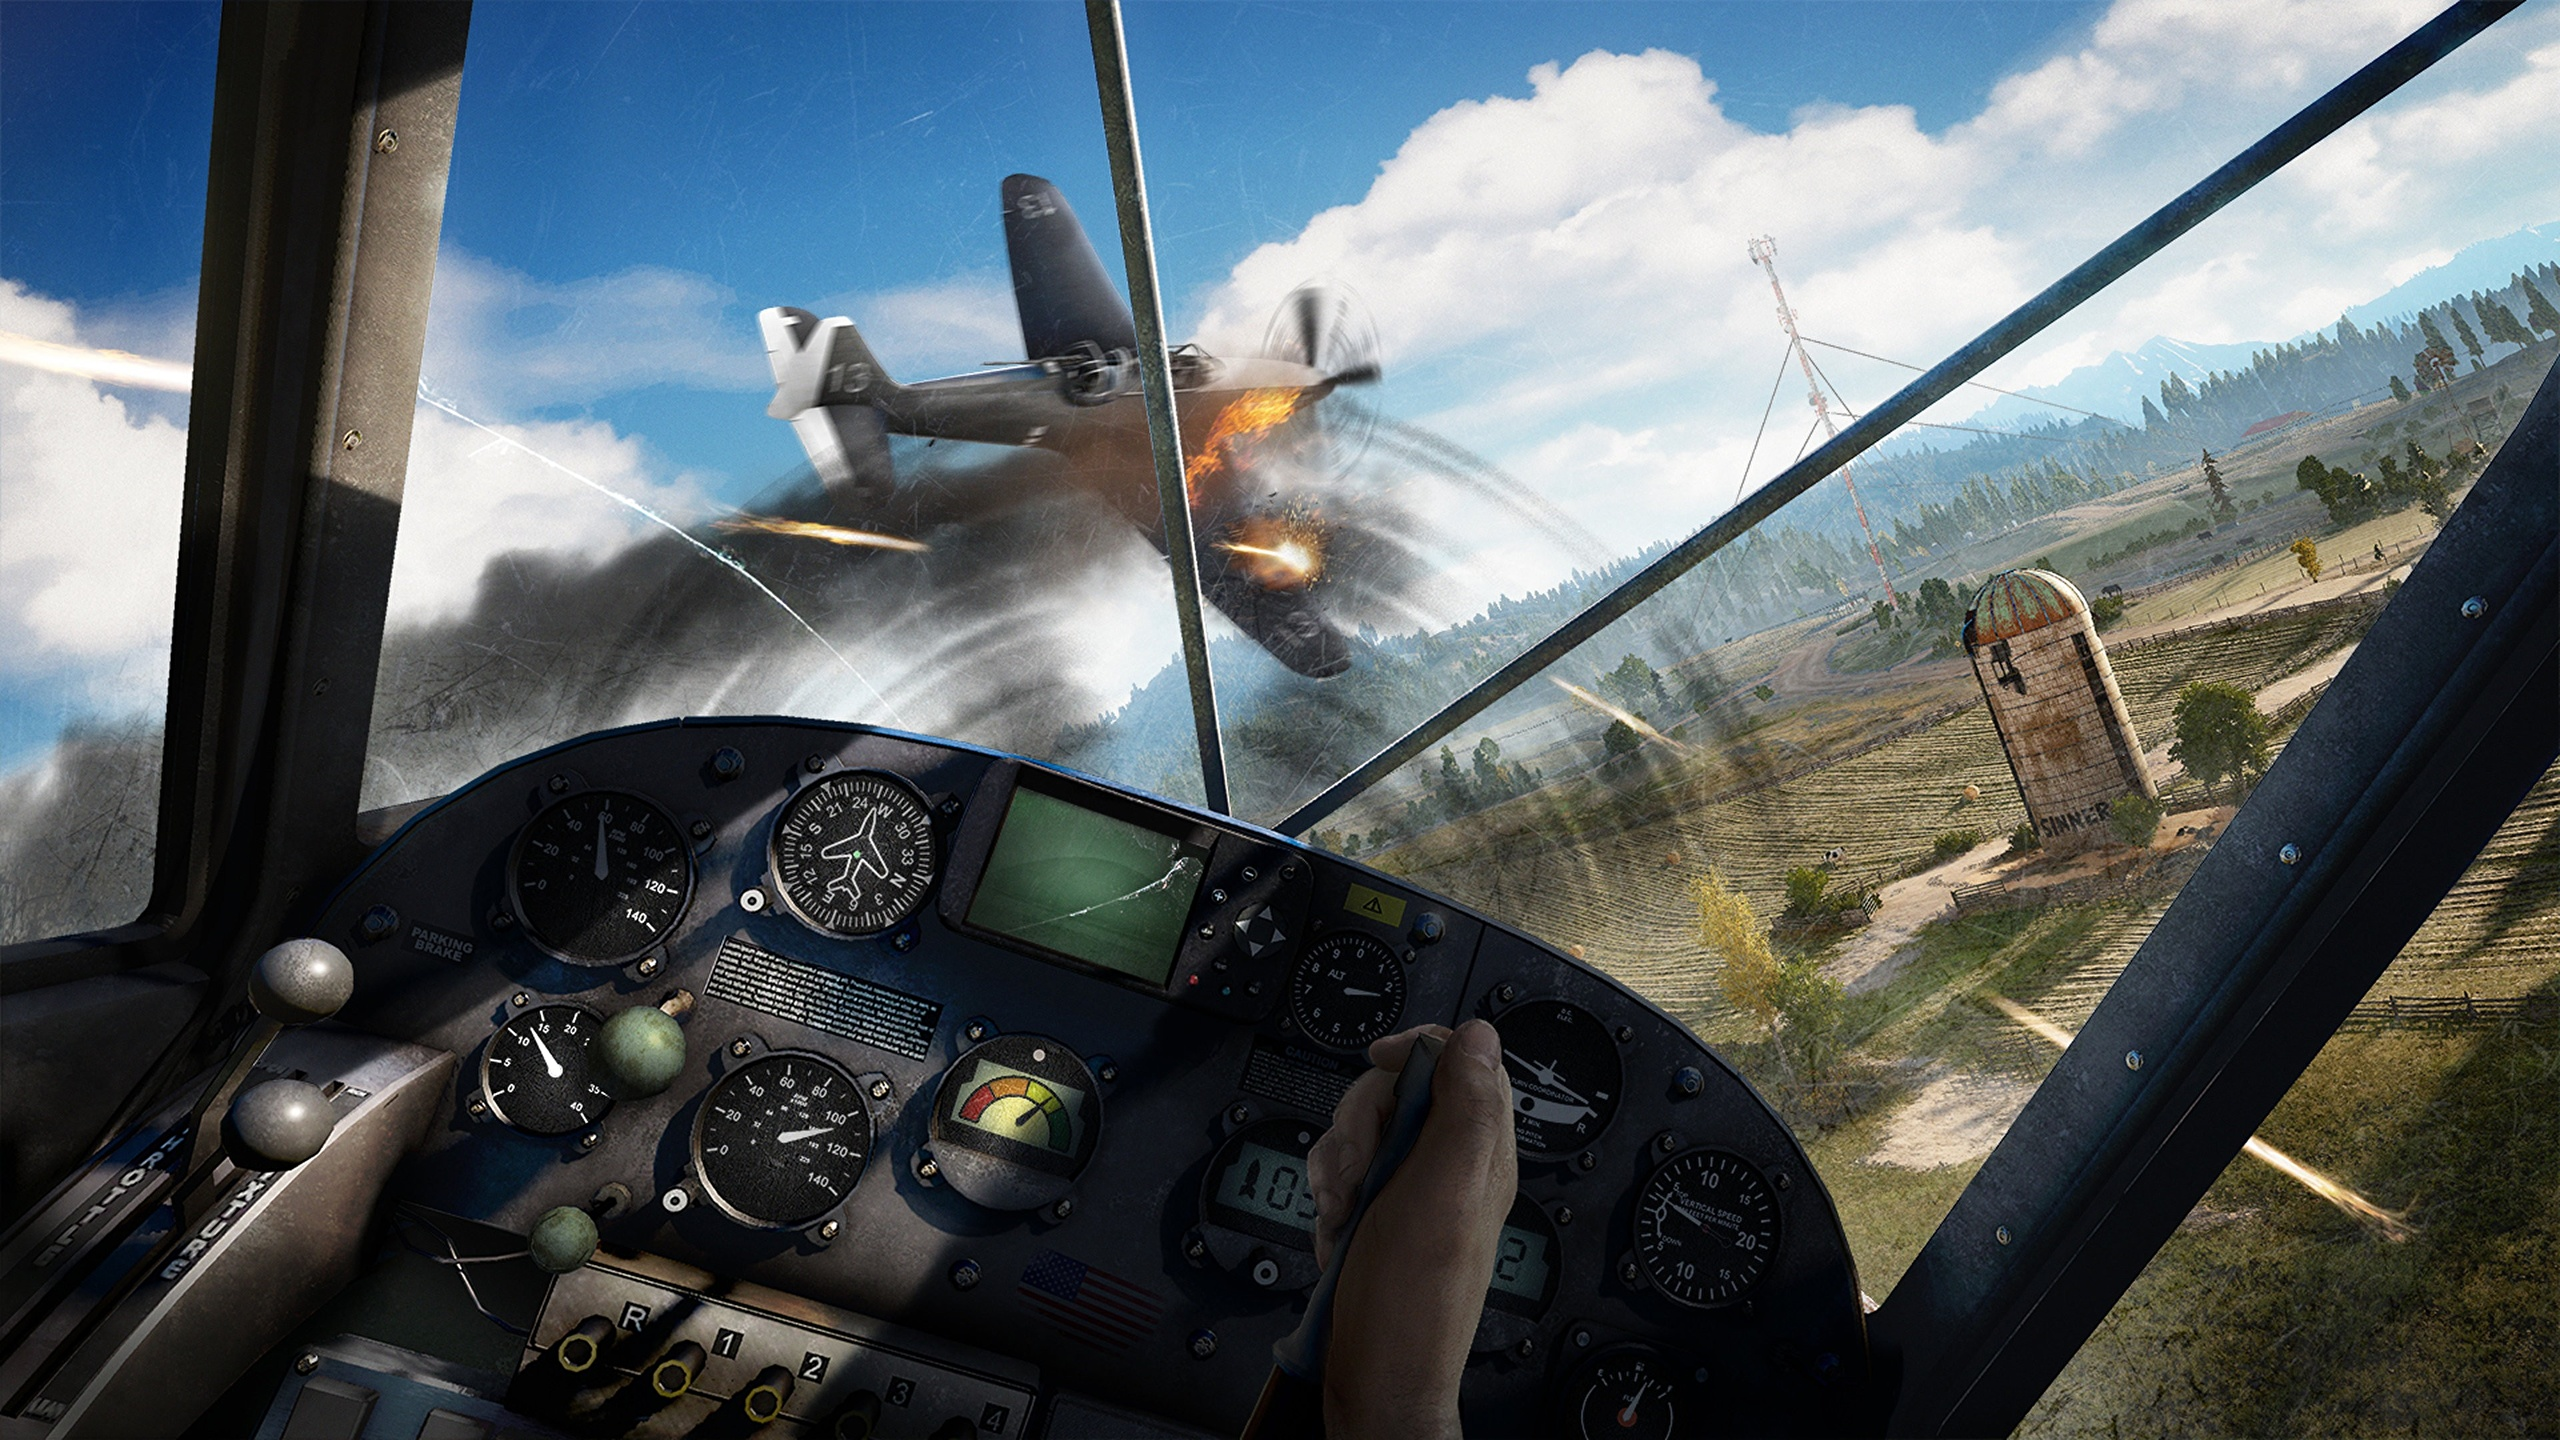 Pictures Far Cry 5 Airplane Cockpit Games Flight 2560x1440